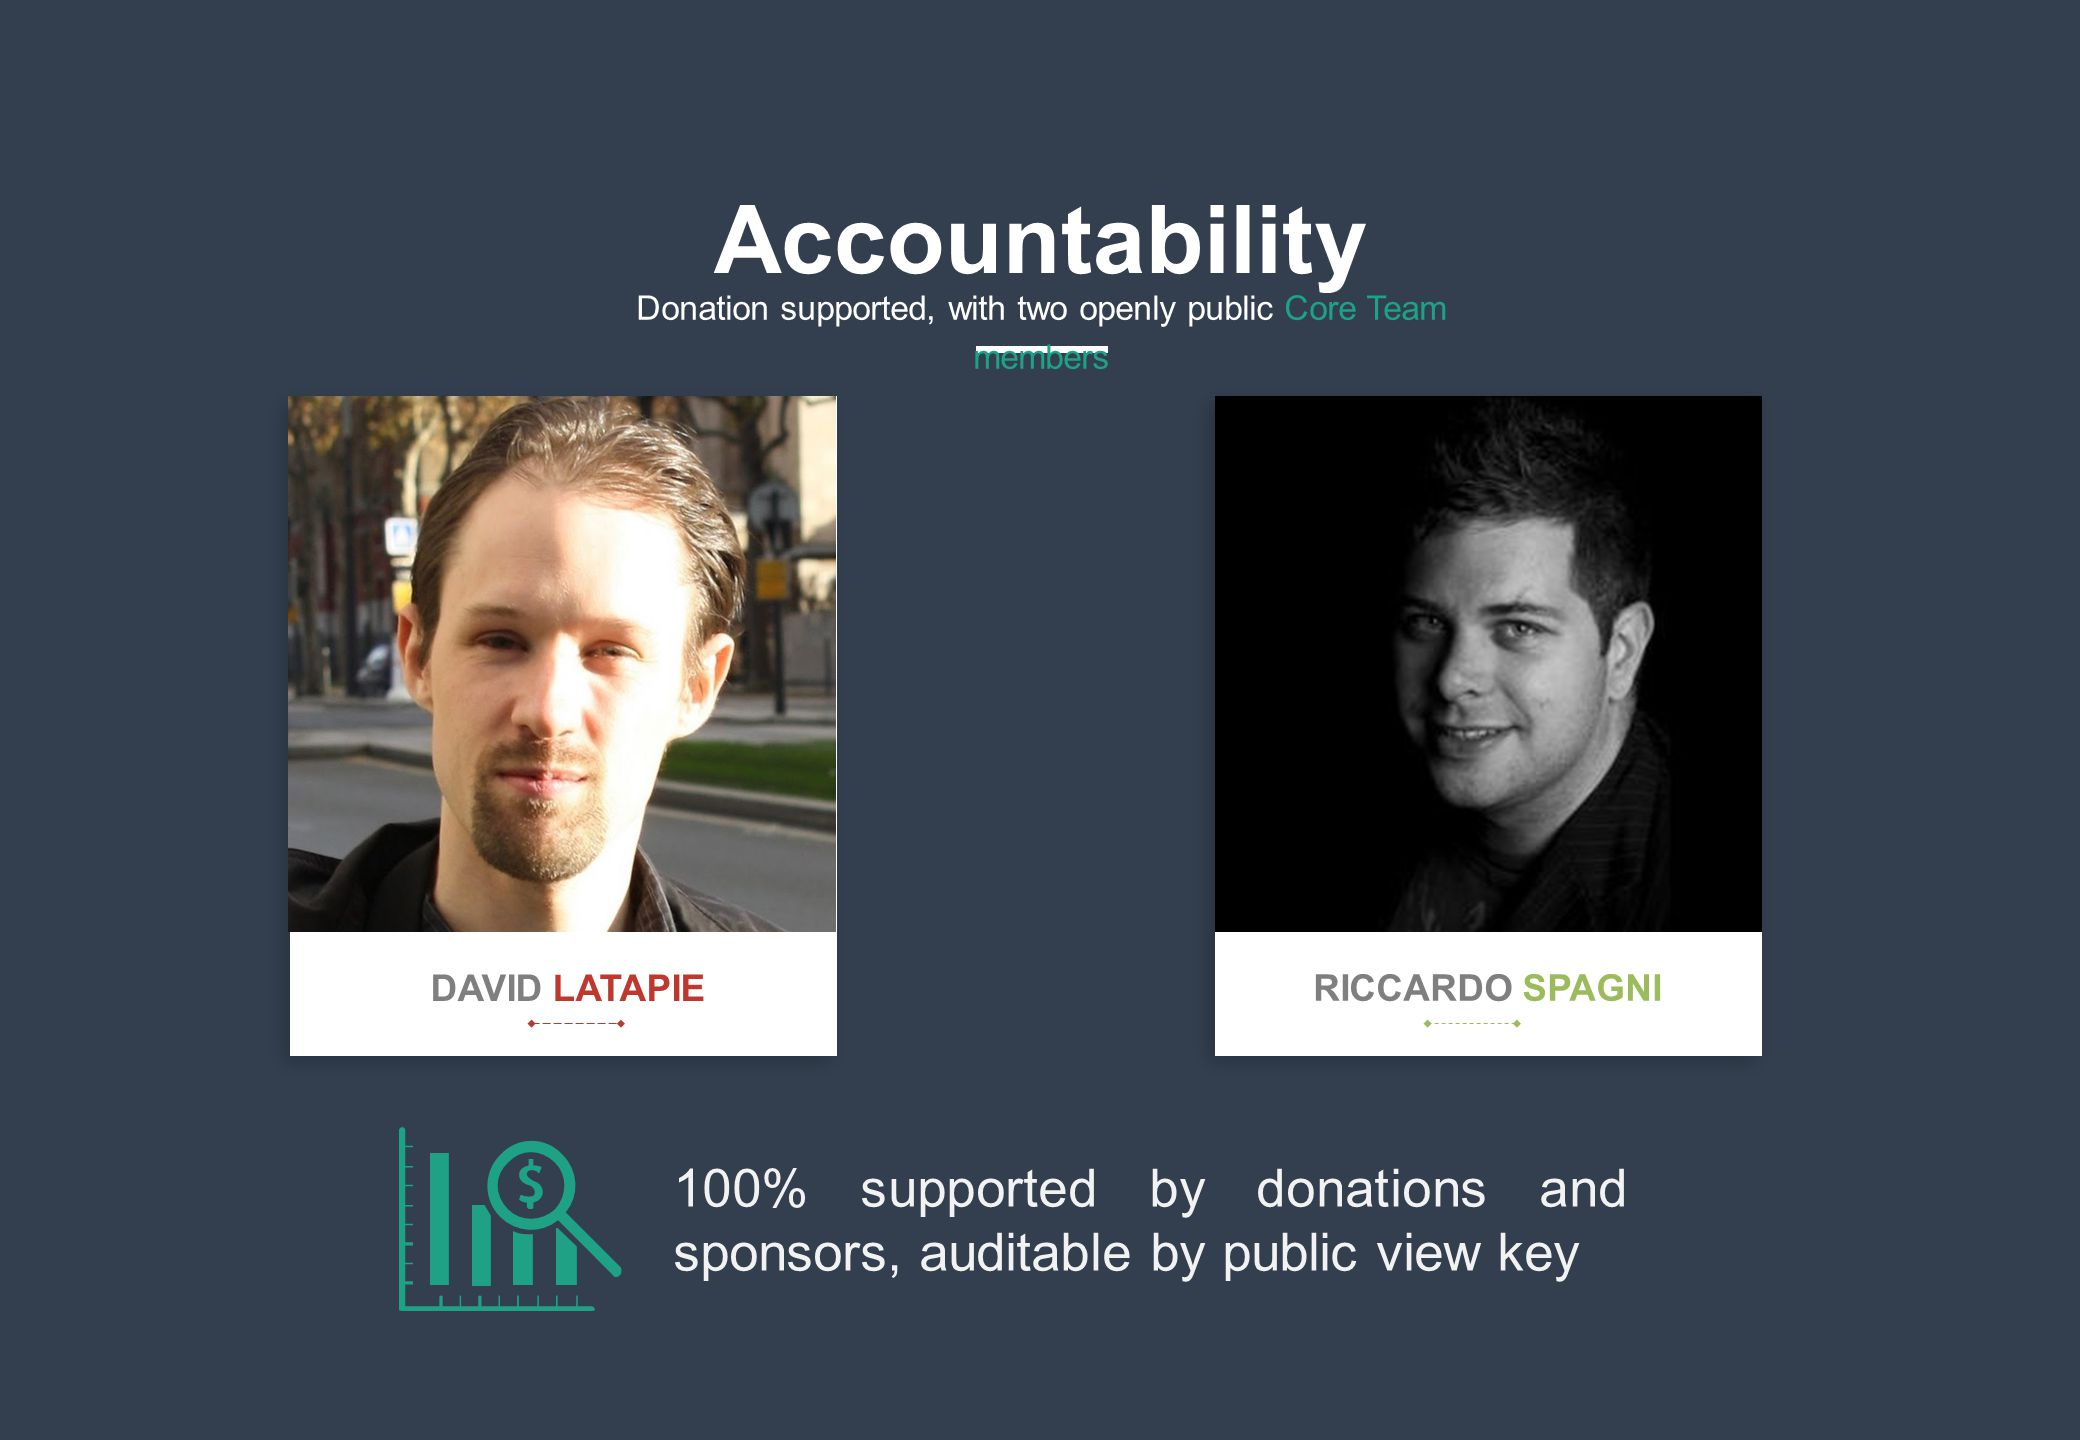 DAVID LATAPIE RICCARDO SPAGNI Accountability Donation supported, with two openly public Core Team members 100% supported by donations and sponsors, au